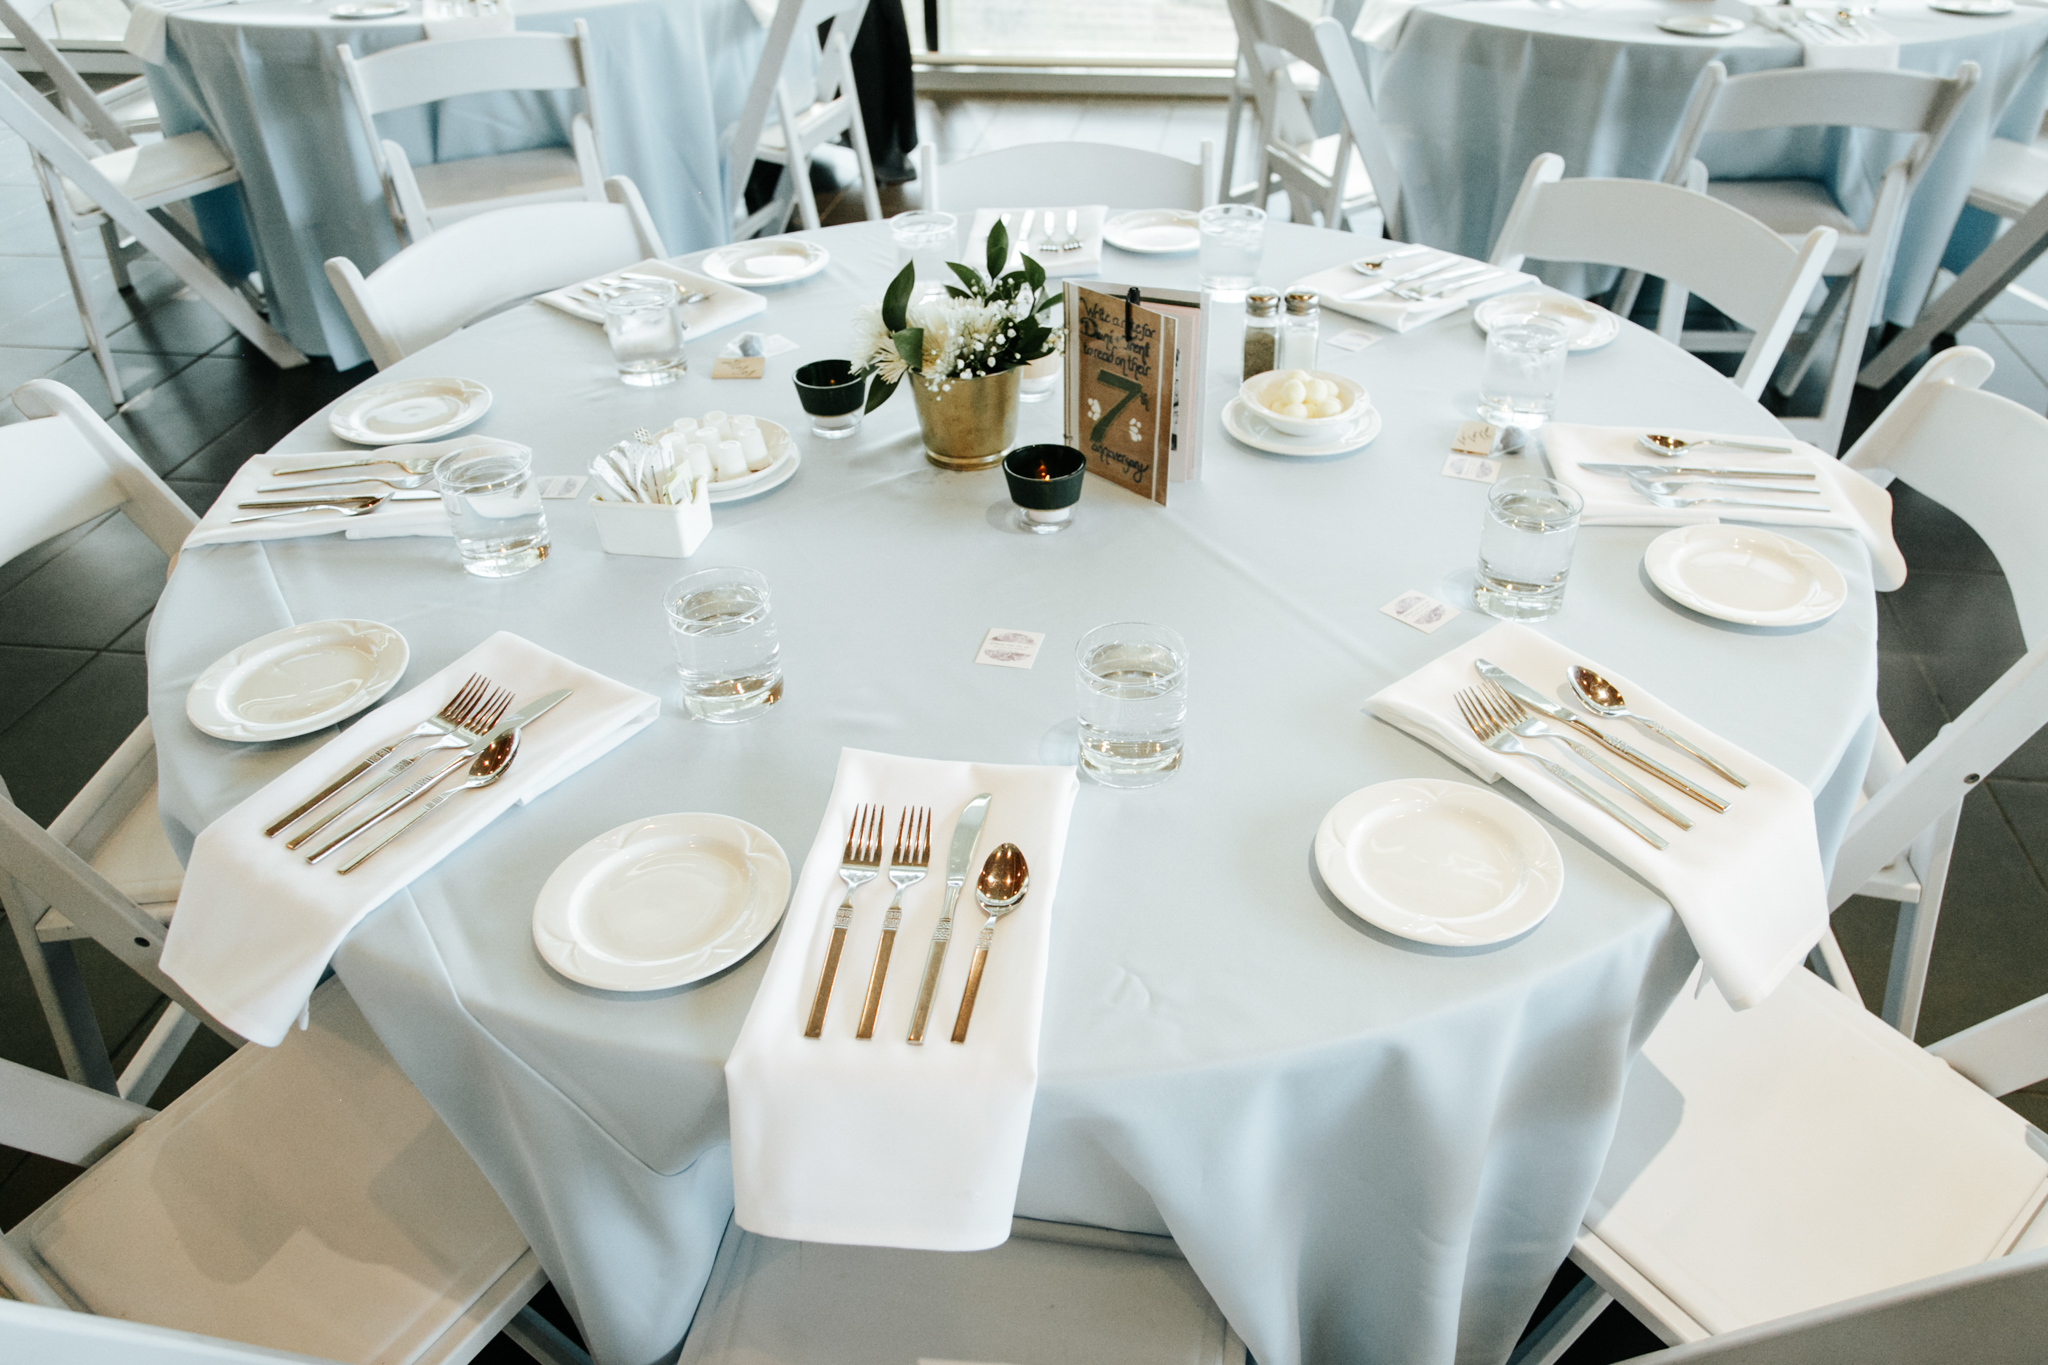 lethbridge-wedding-photographer-love-and-be-loved-photography-trent-danielle-galt-reception-picture-image-photo-159.jpg